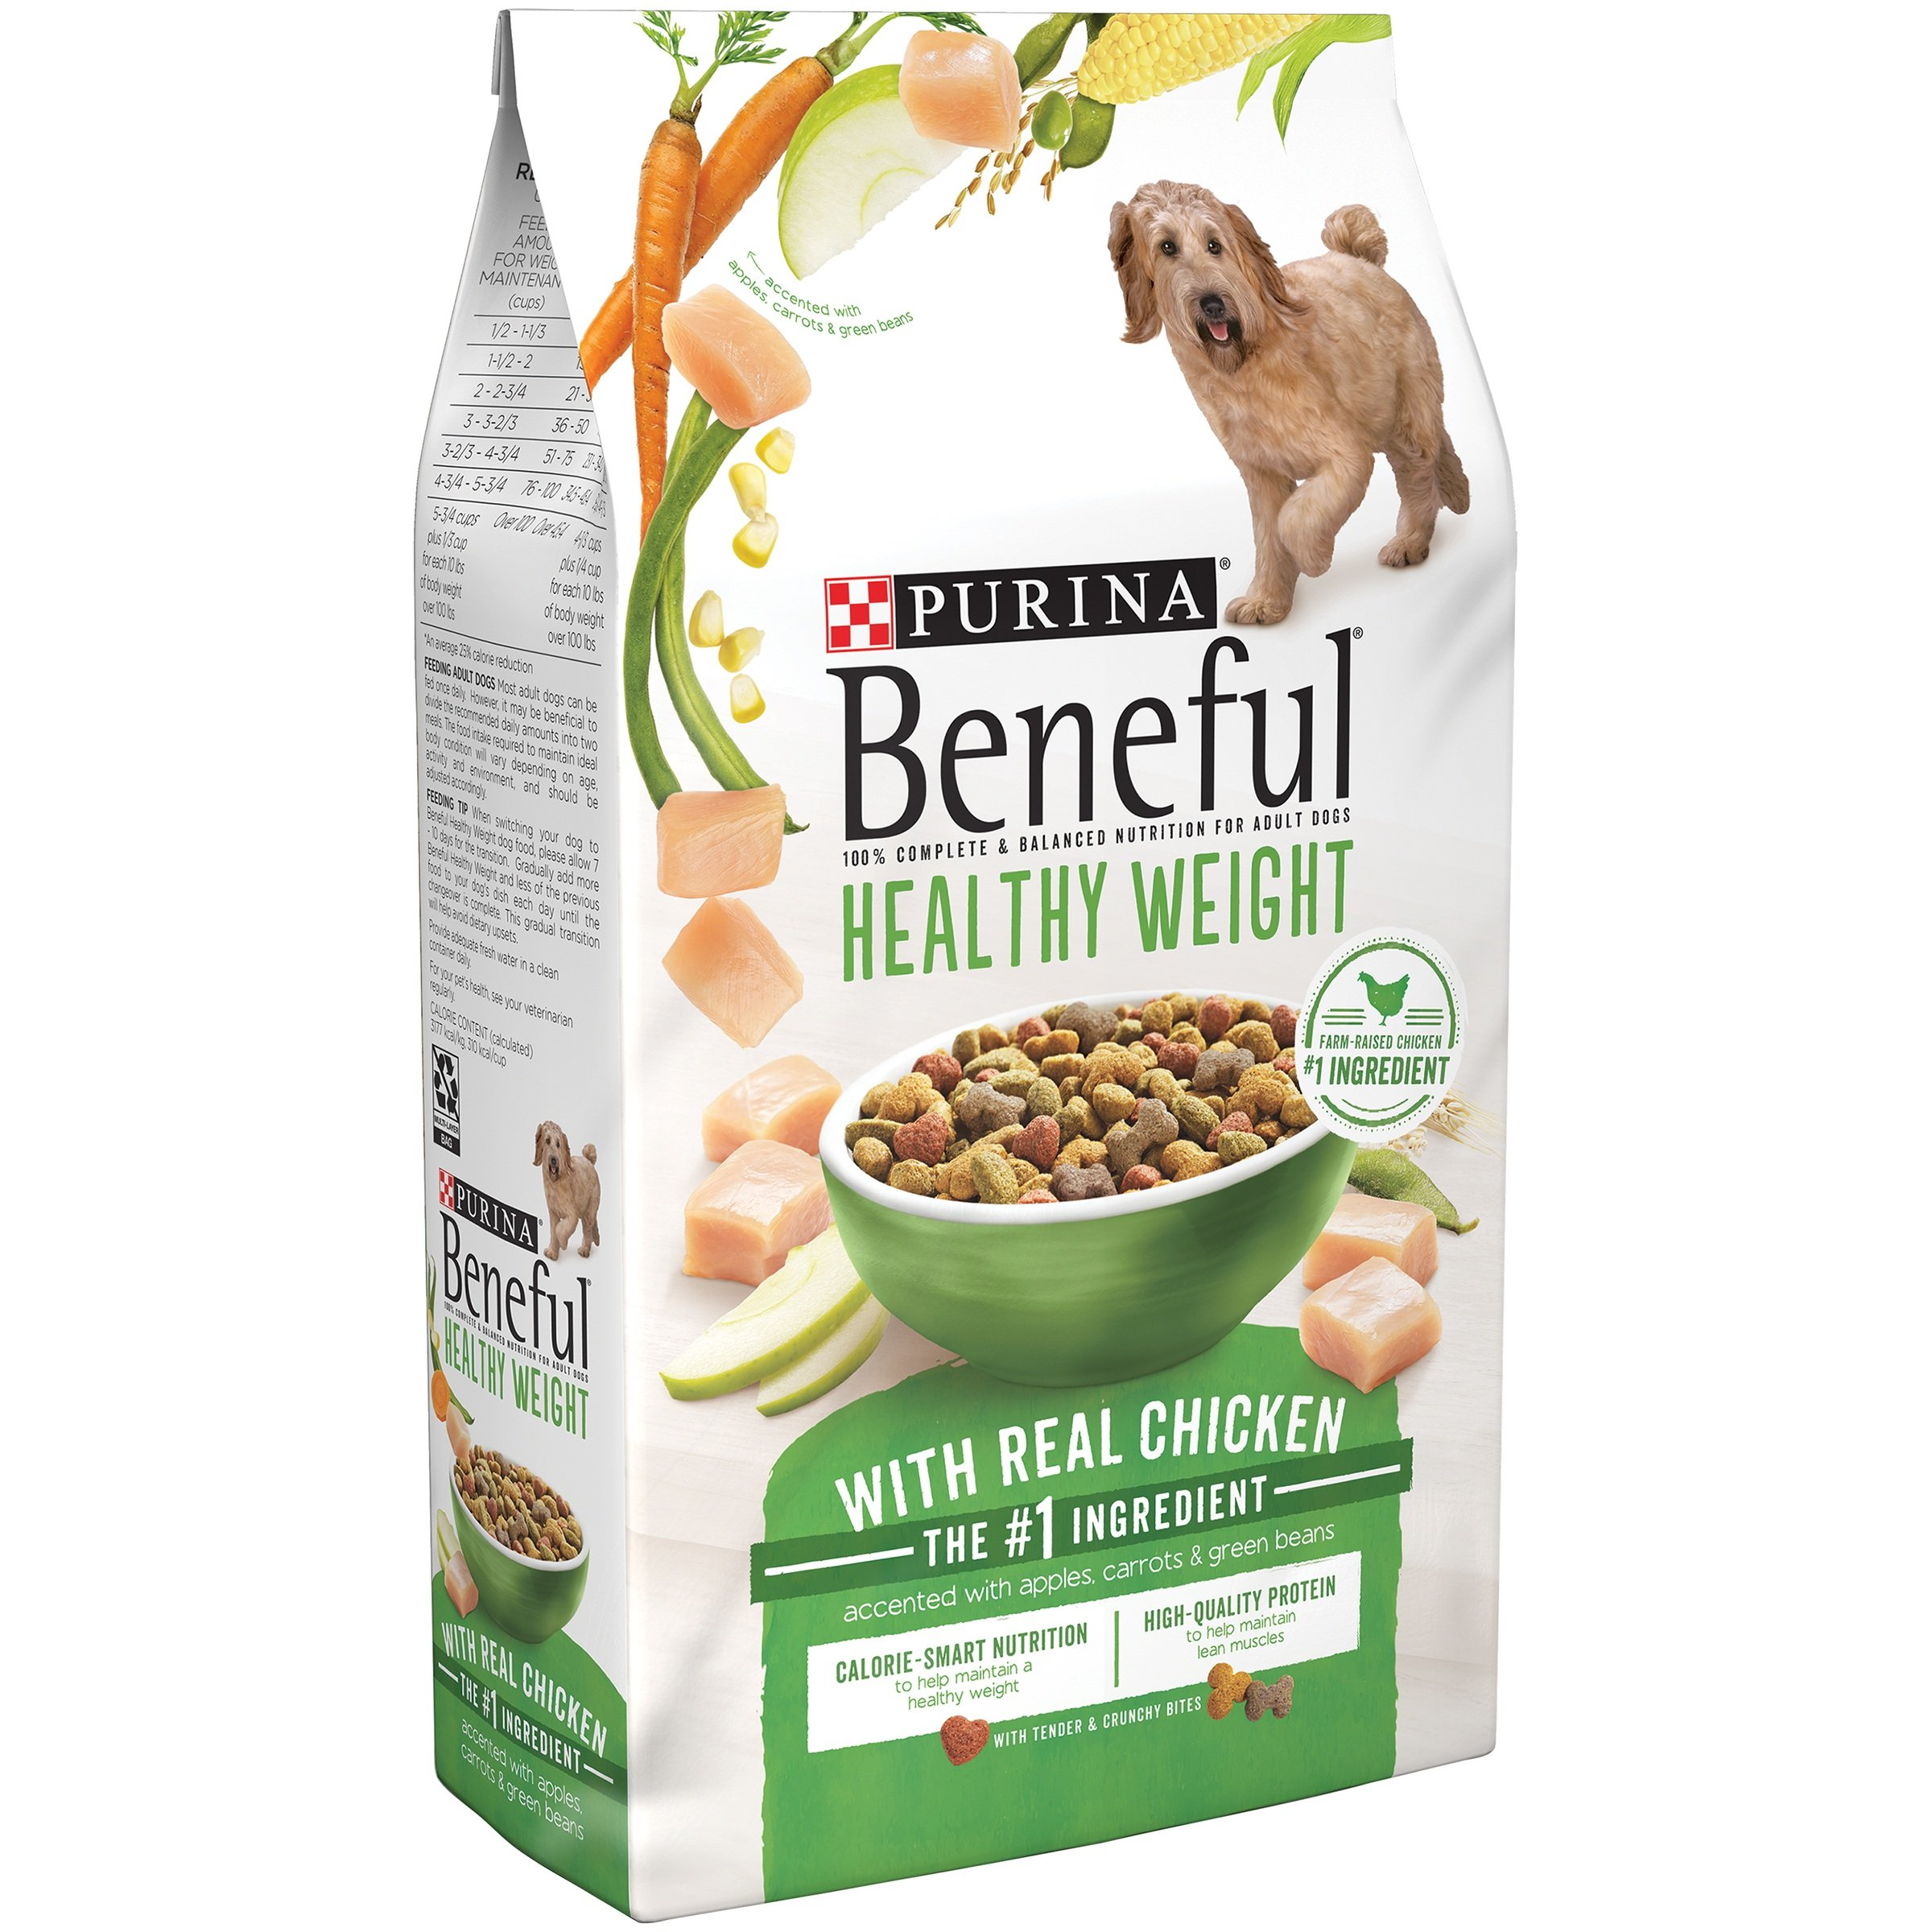 Purina Beneful Healthy Weight With Real Chicken Dry Dog Food 31 1